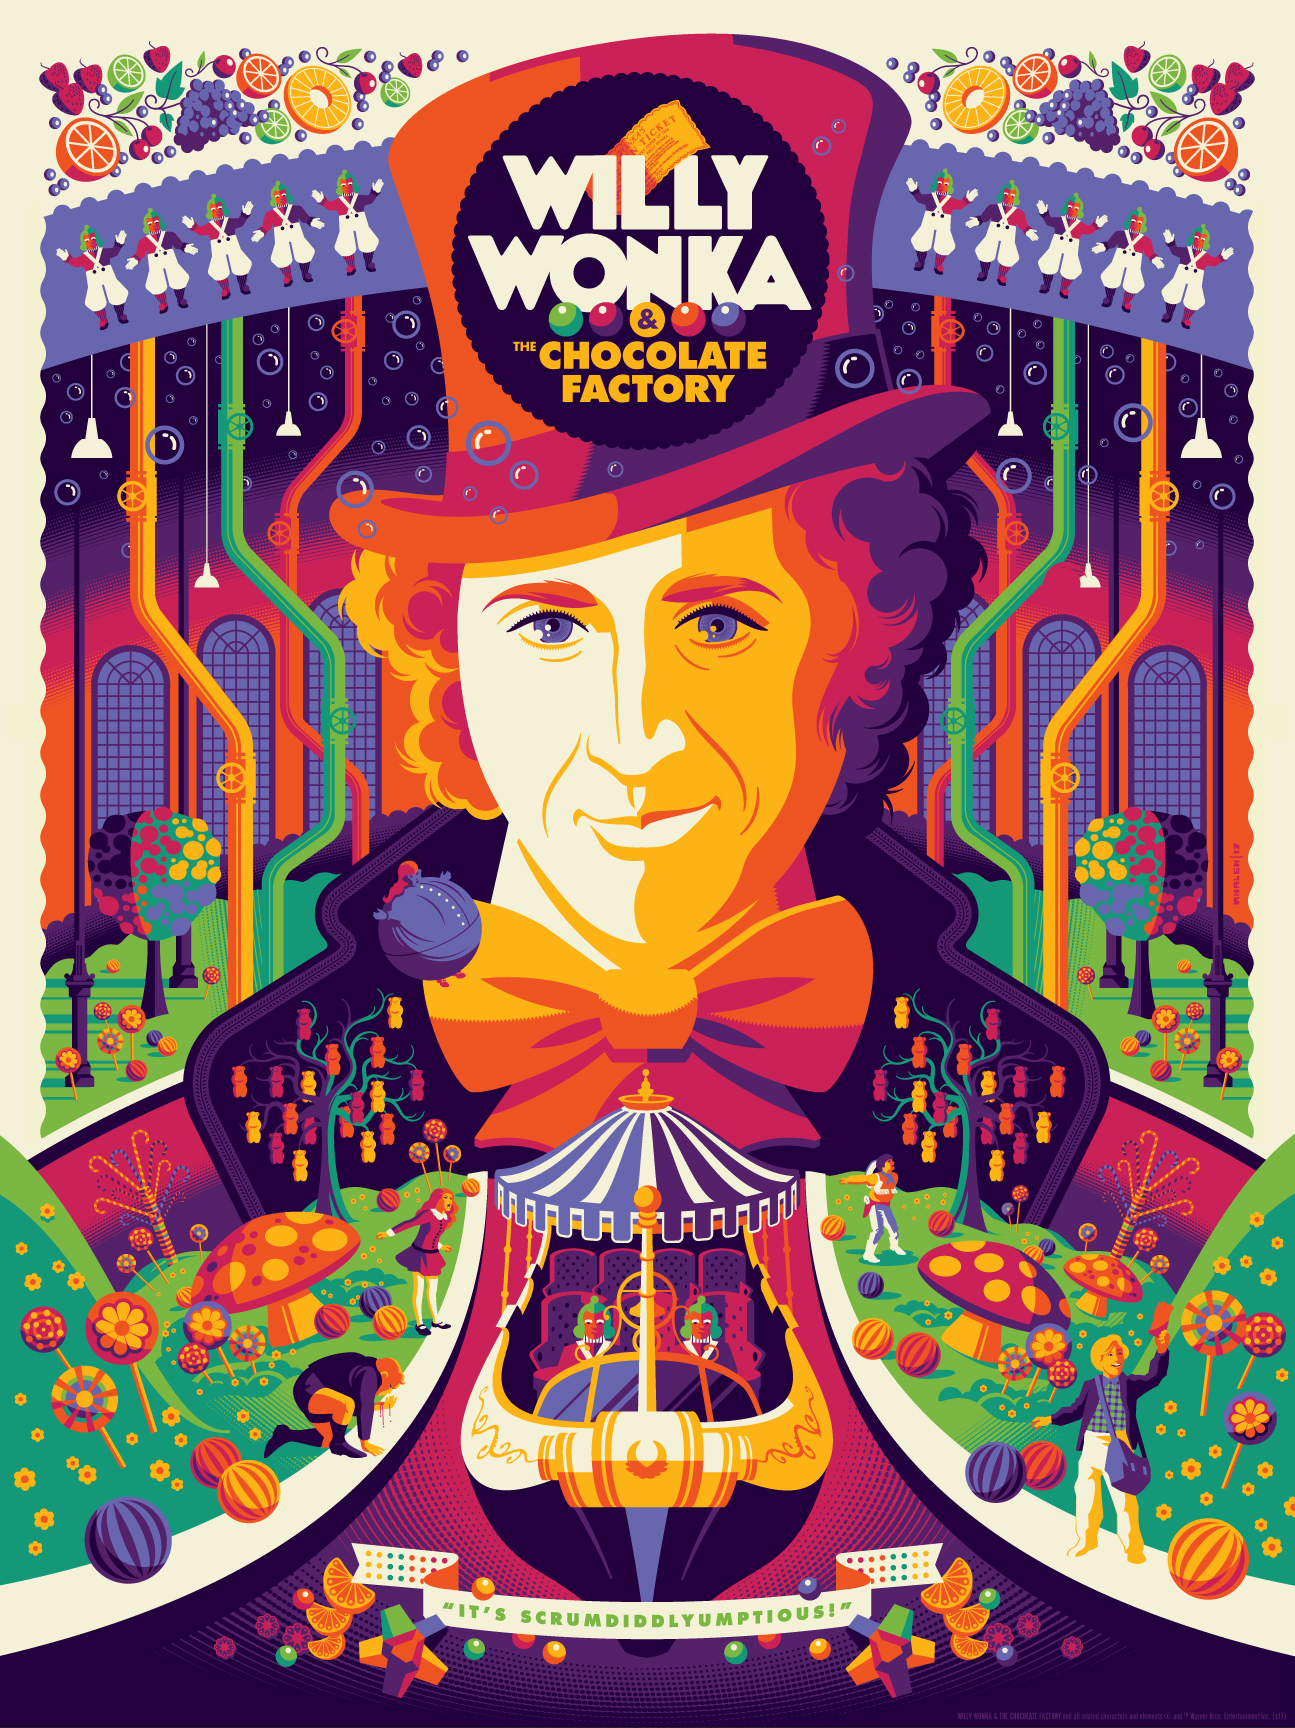 this-willy-wonka-and-the-chocolate-factory-poster-art-is-a-colorful-explosion-of-pure-imagination5